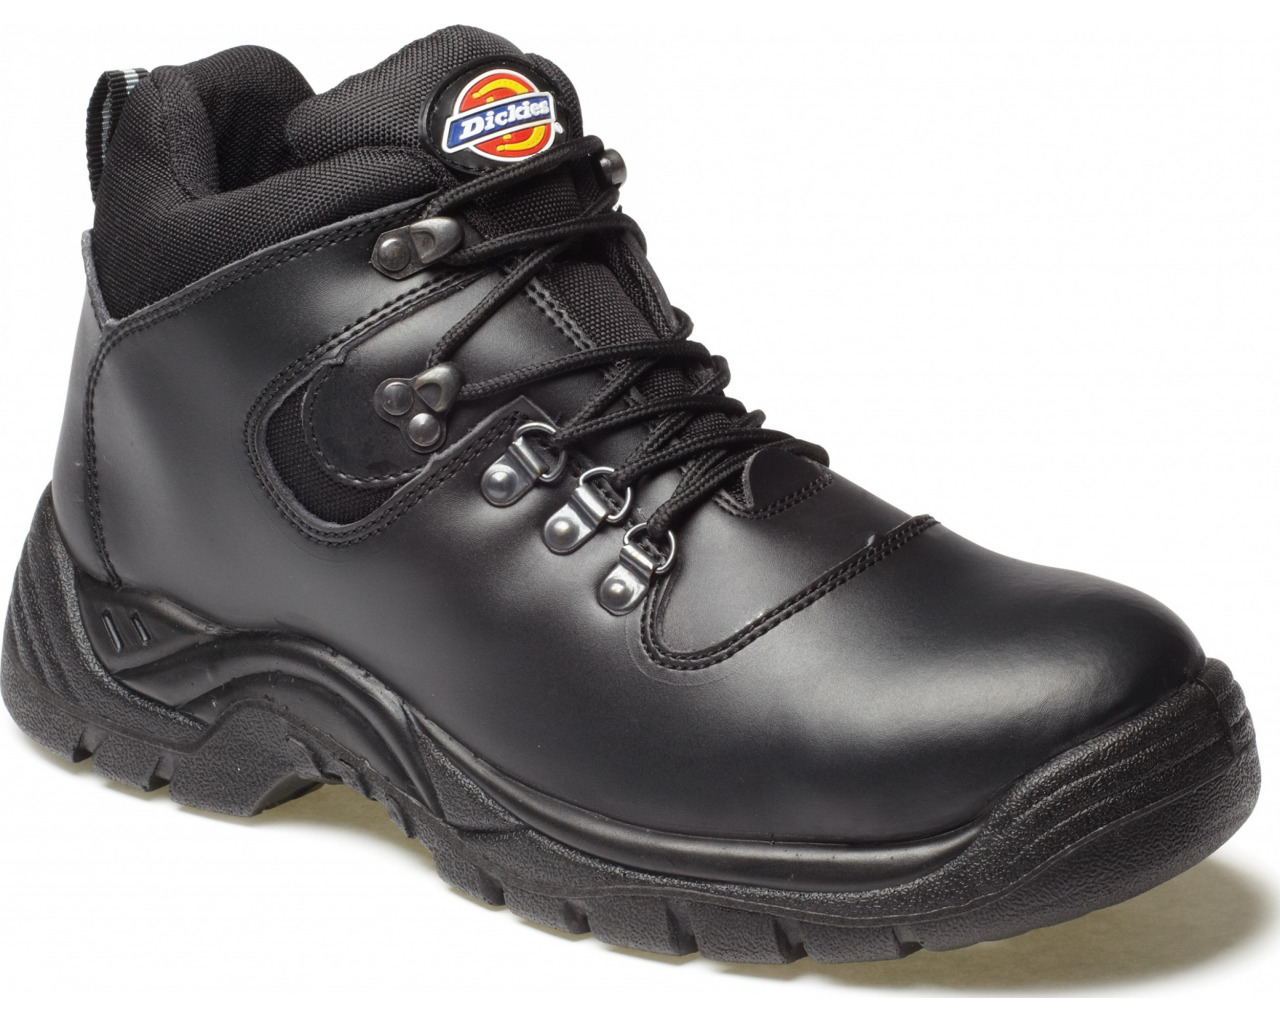 DICKIES FURY SAFETY HIKER BOOT w/ Steel Toe Cap